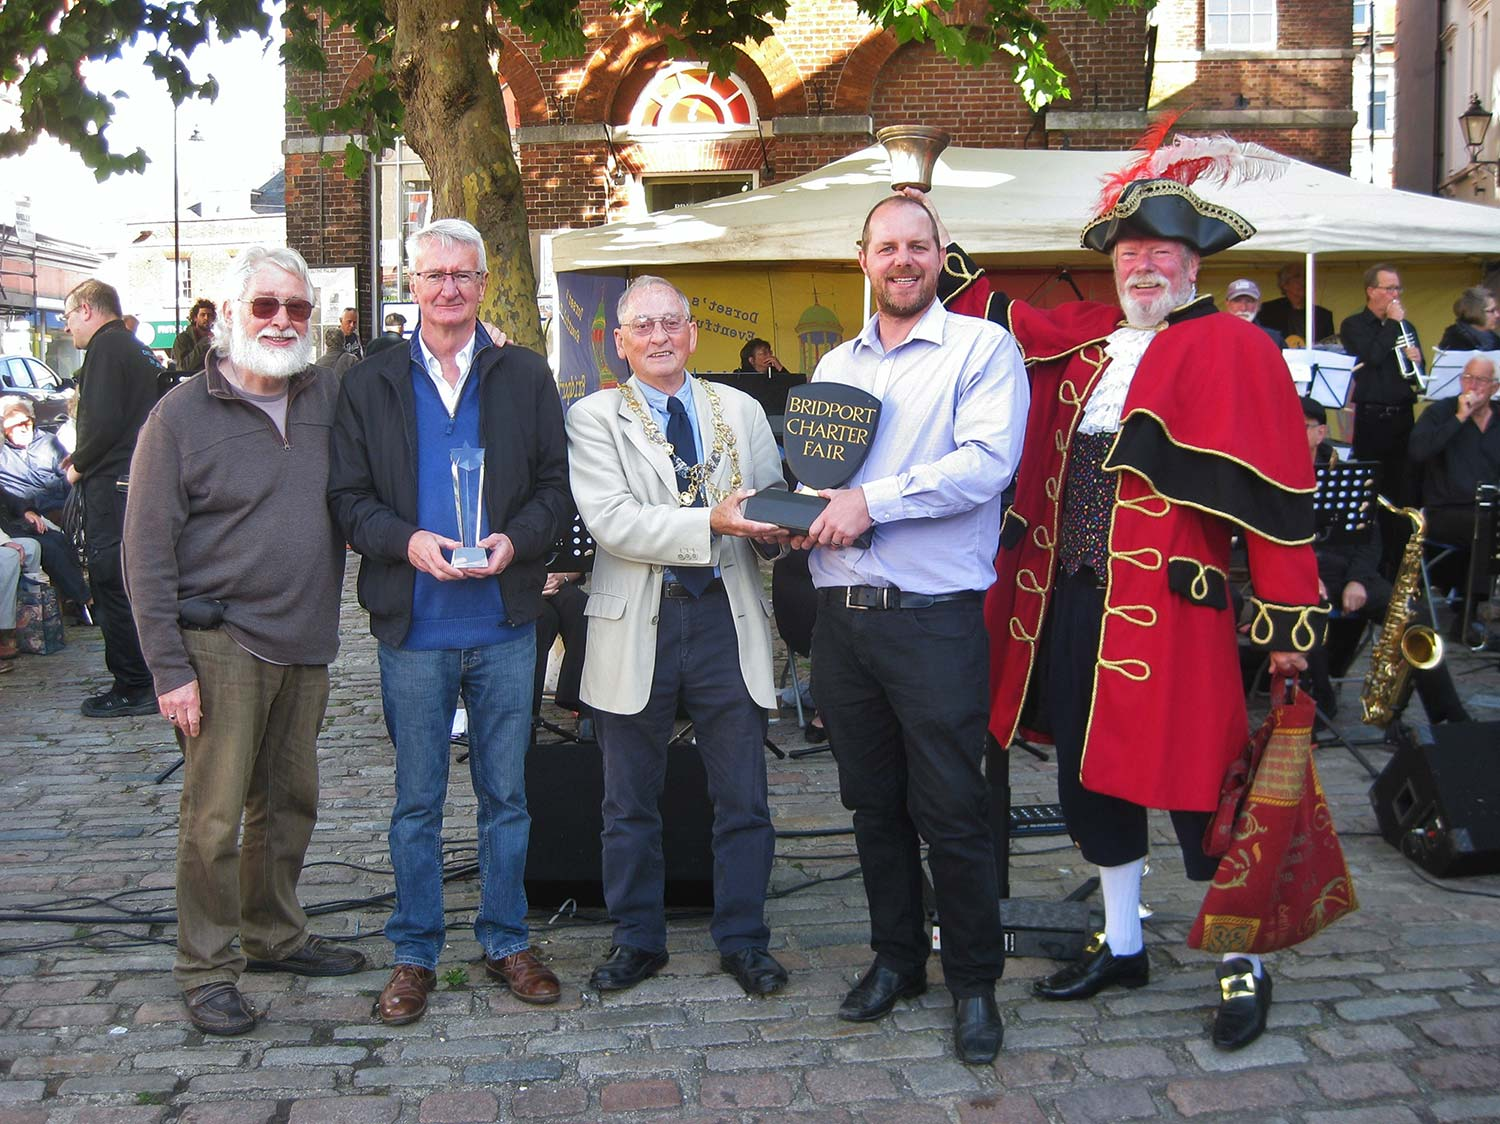 Bridport Charter Fair Award Winners